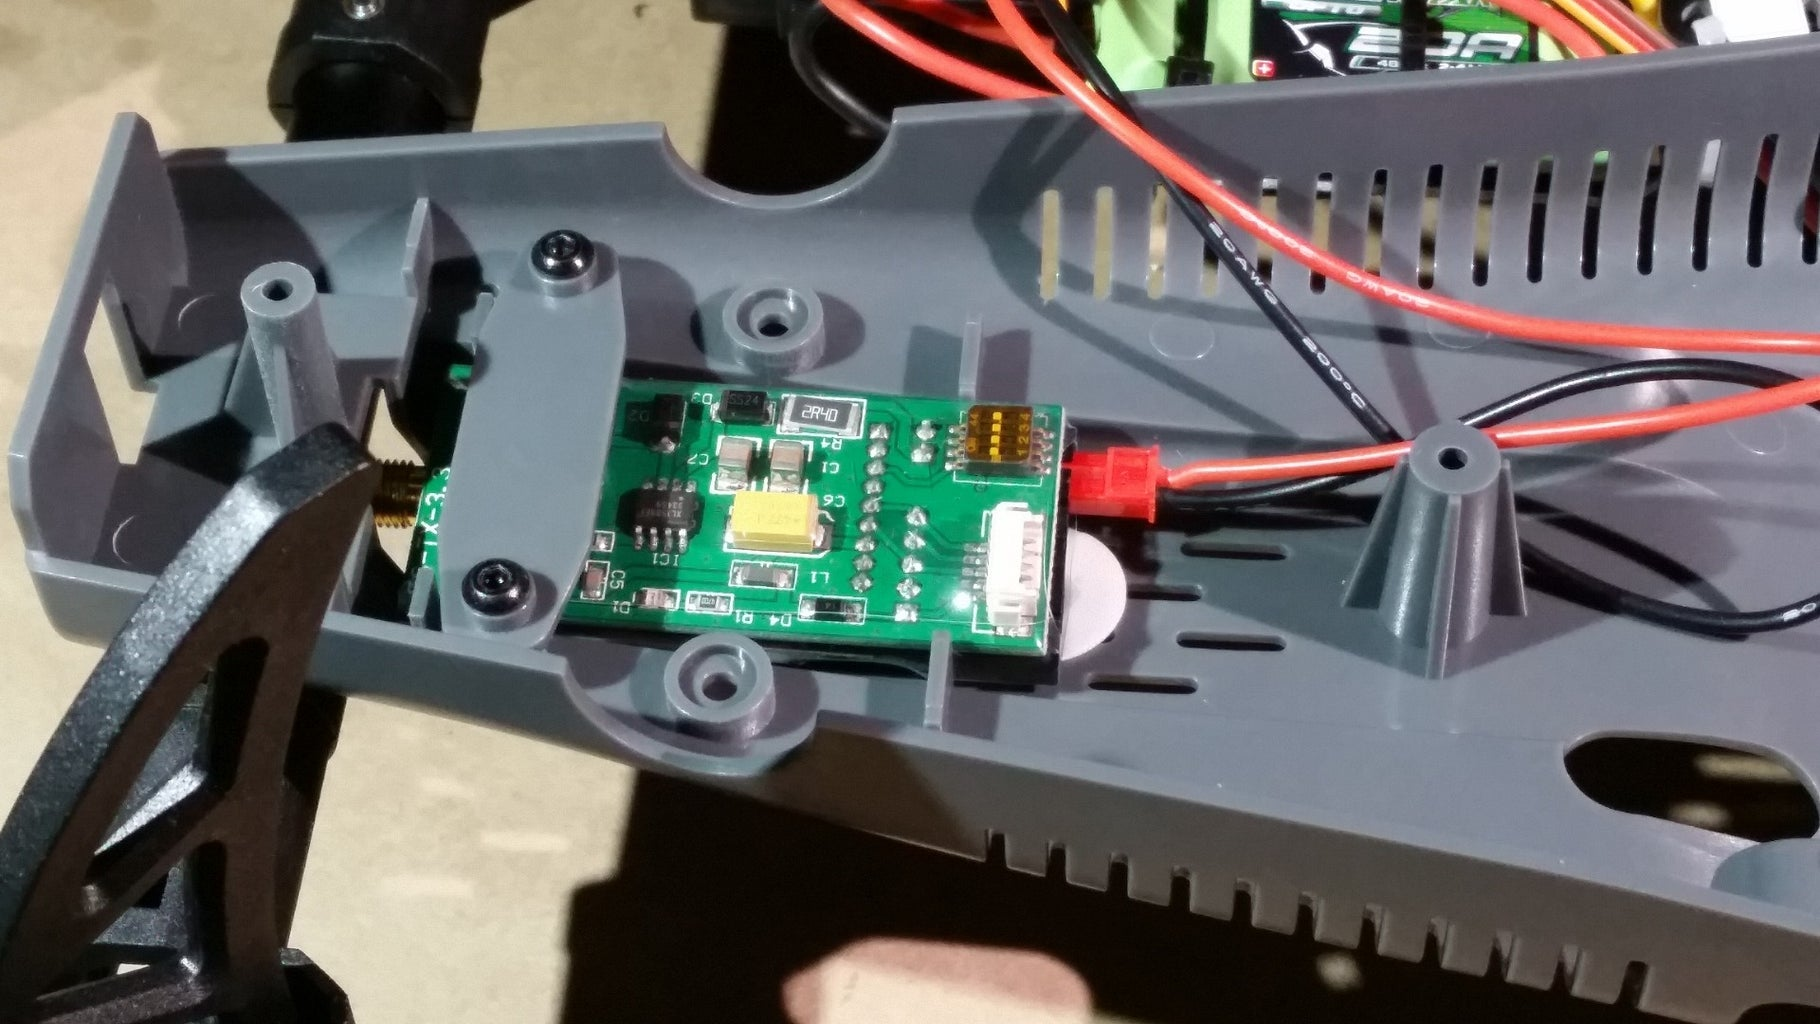 Connect the FPV Components